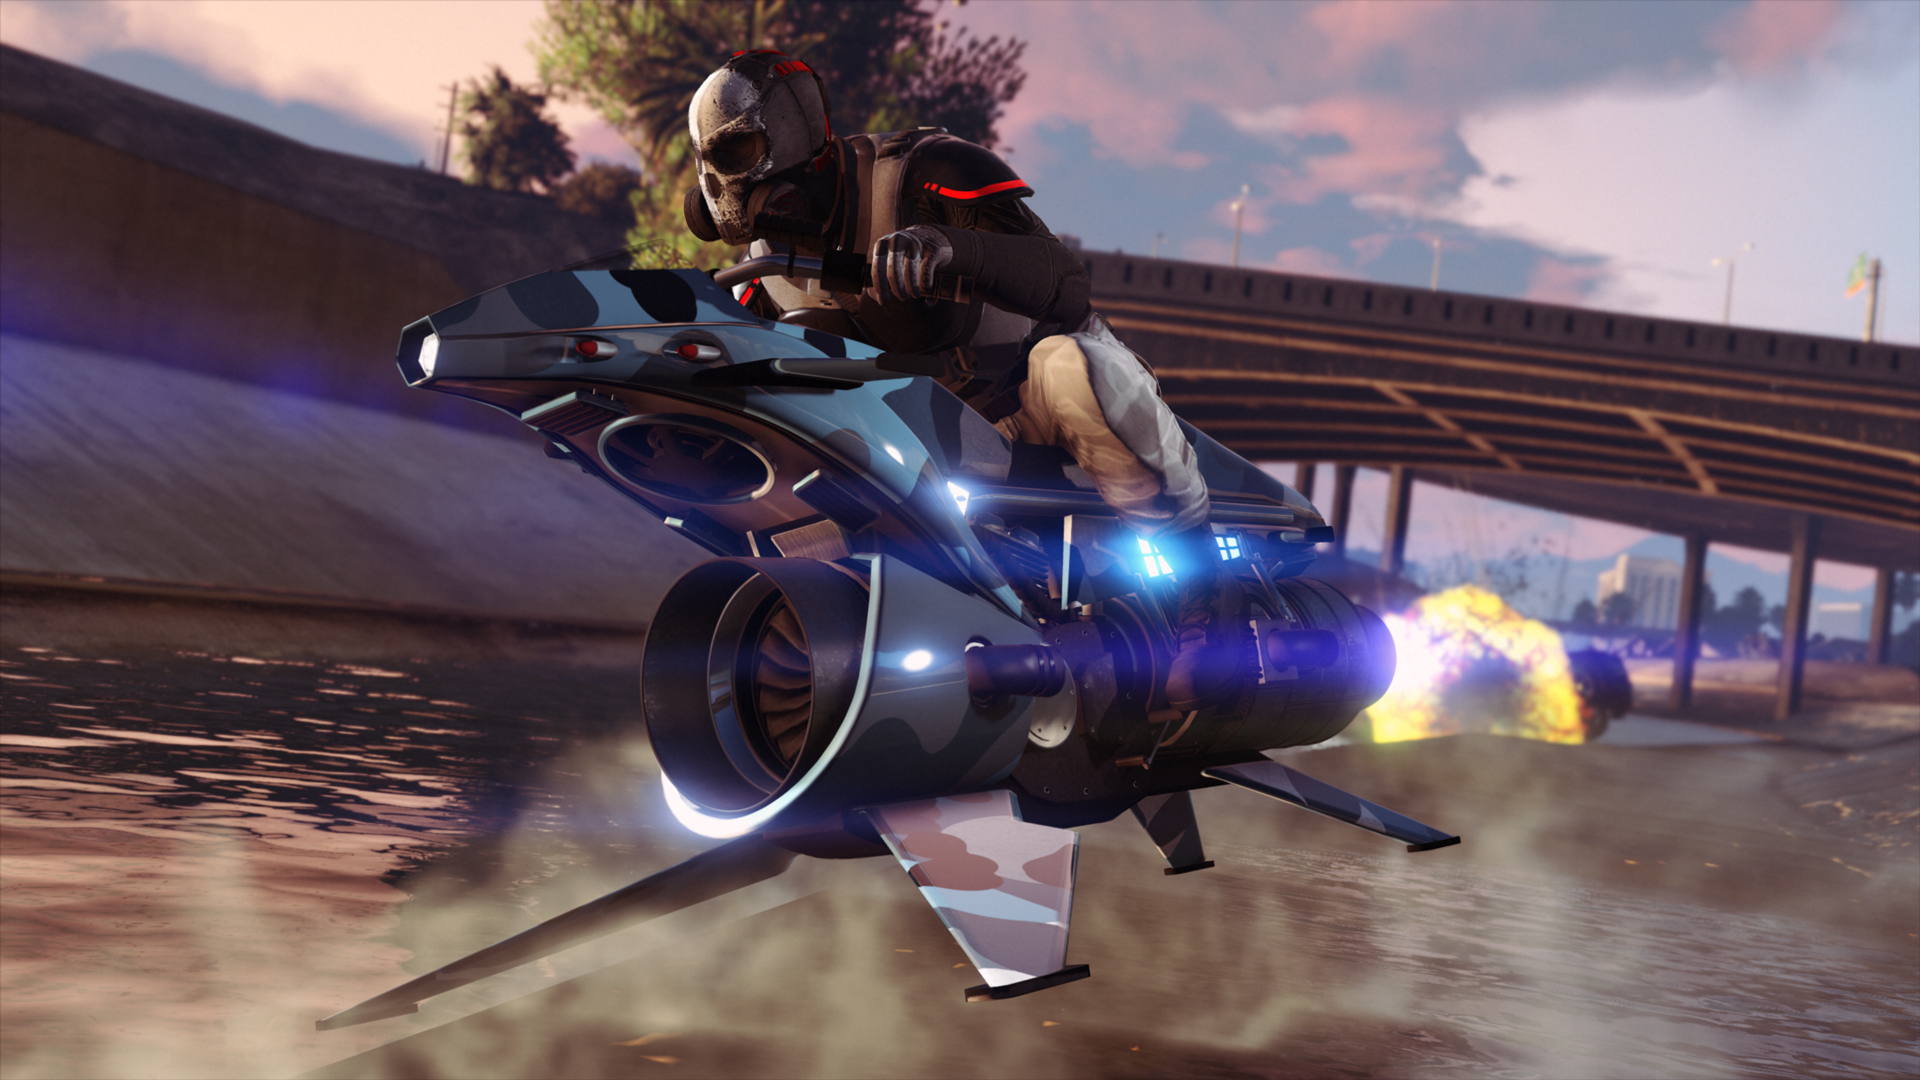 GTA Online: The Oppressor MK II and the Terrorbyte release